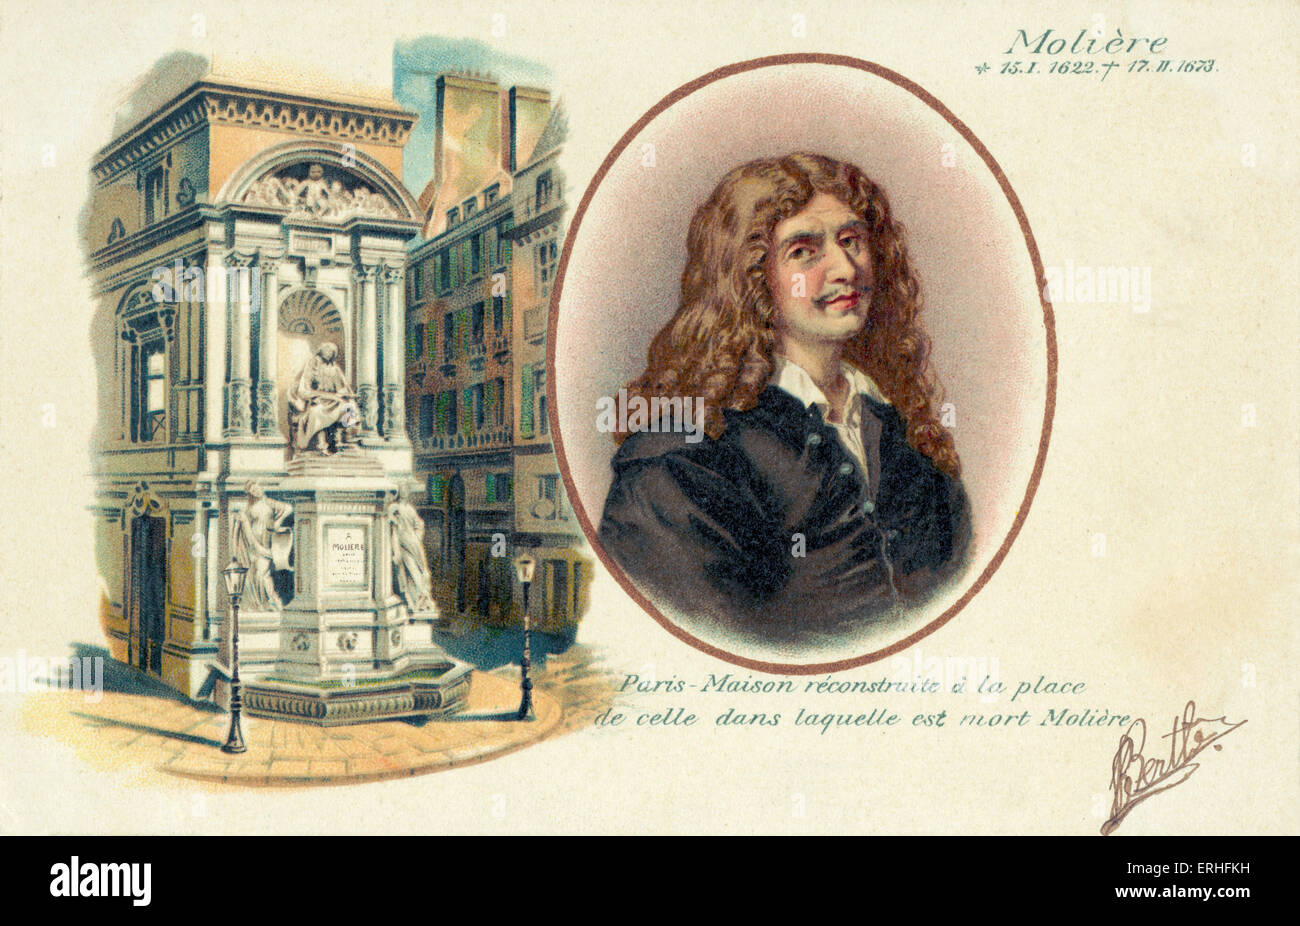 Moliere (real name Jan-Baptiste Poquelin) - portrait with illustration of monument dedicated to him - French dramatist, - Stock Image